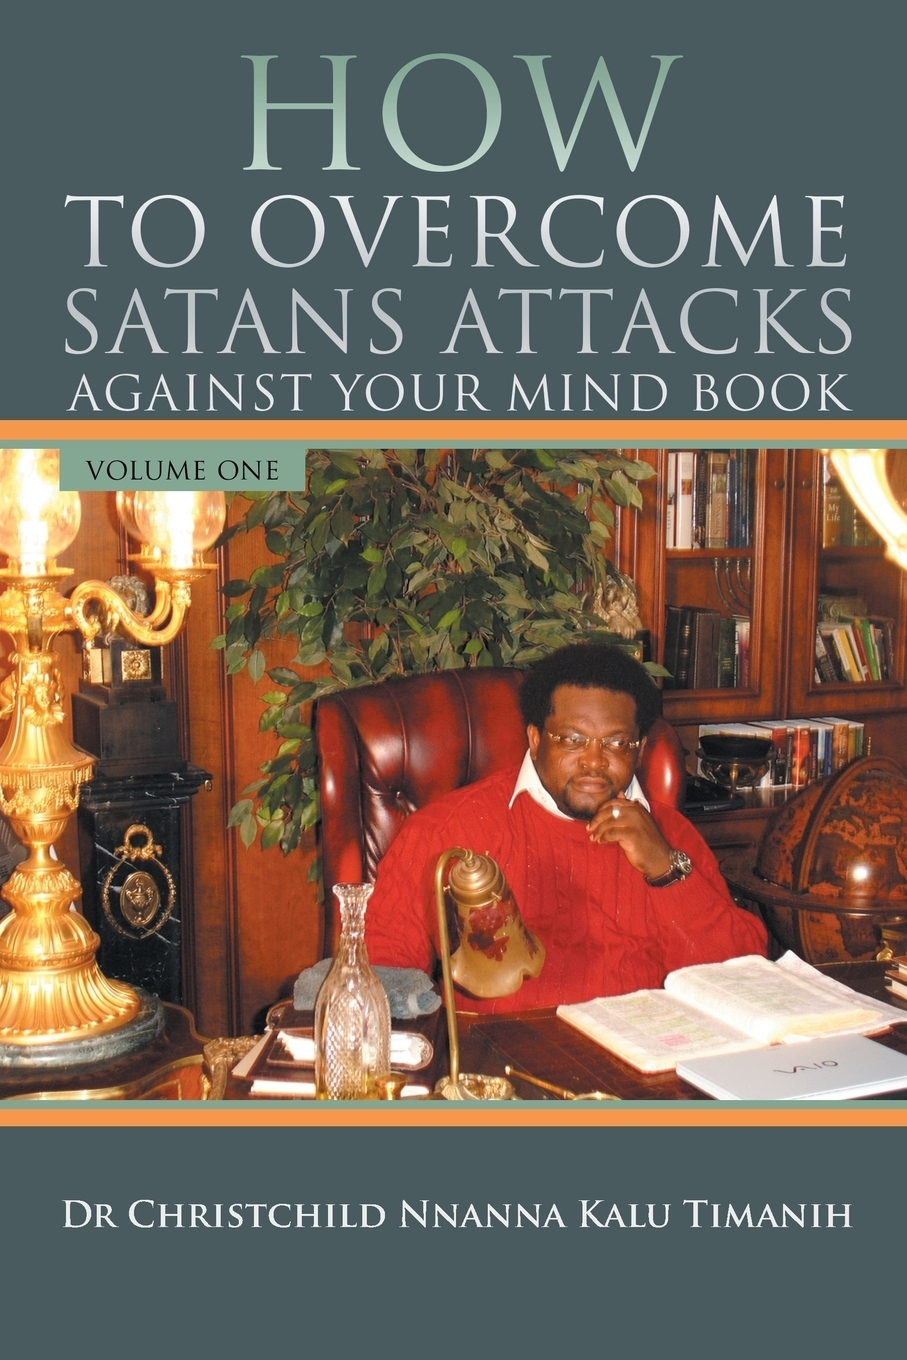 HOW TO OVERCOME SATANS ATTACKS AGAINST YOUR MIND BOOK VOLUME ONE